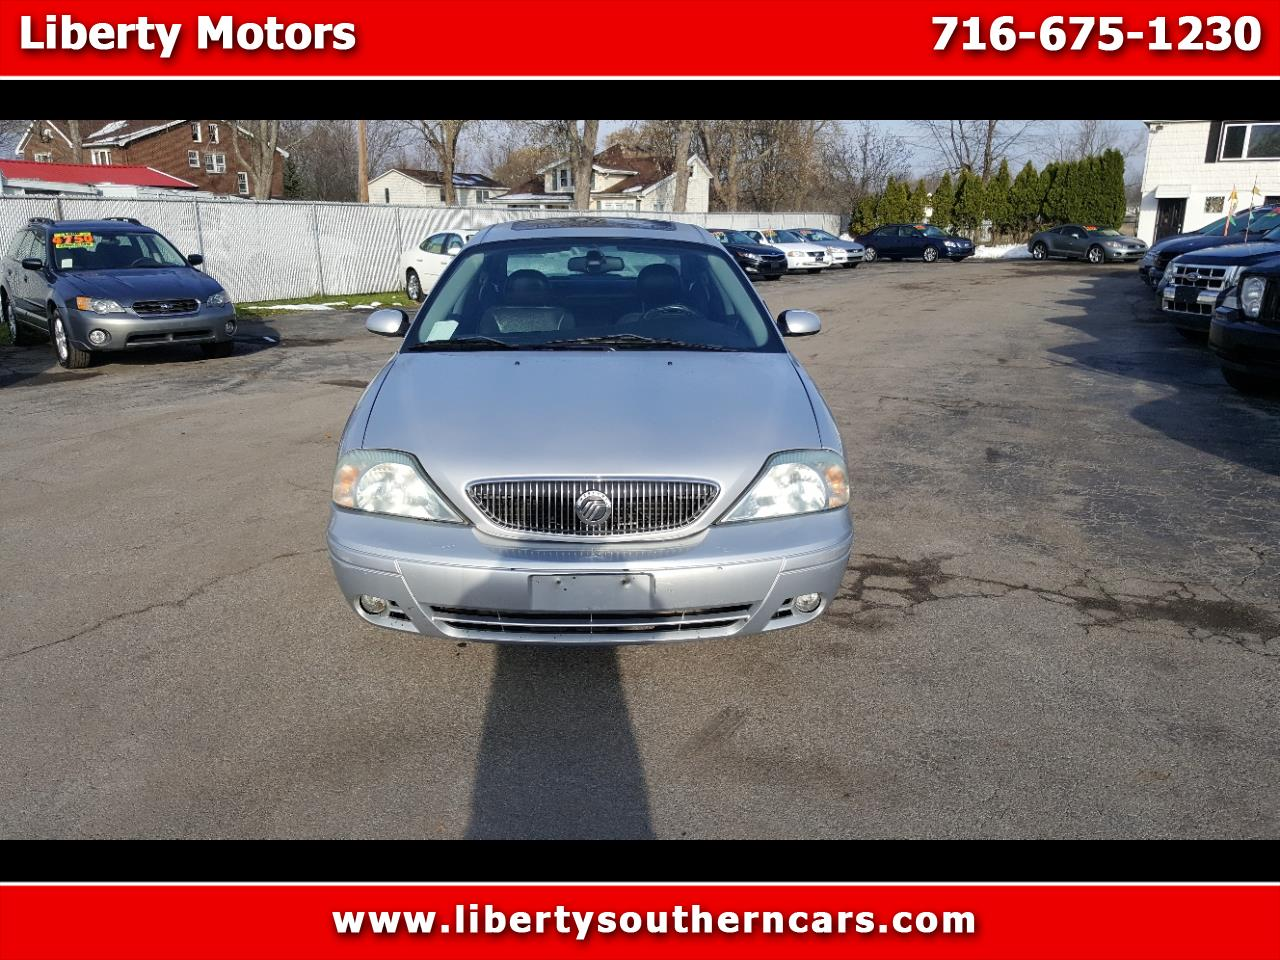 Mercury Sable LS Premium 2004